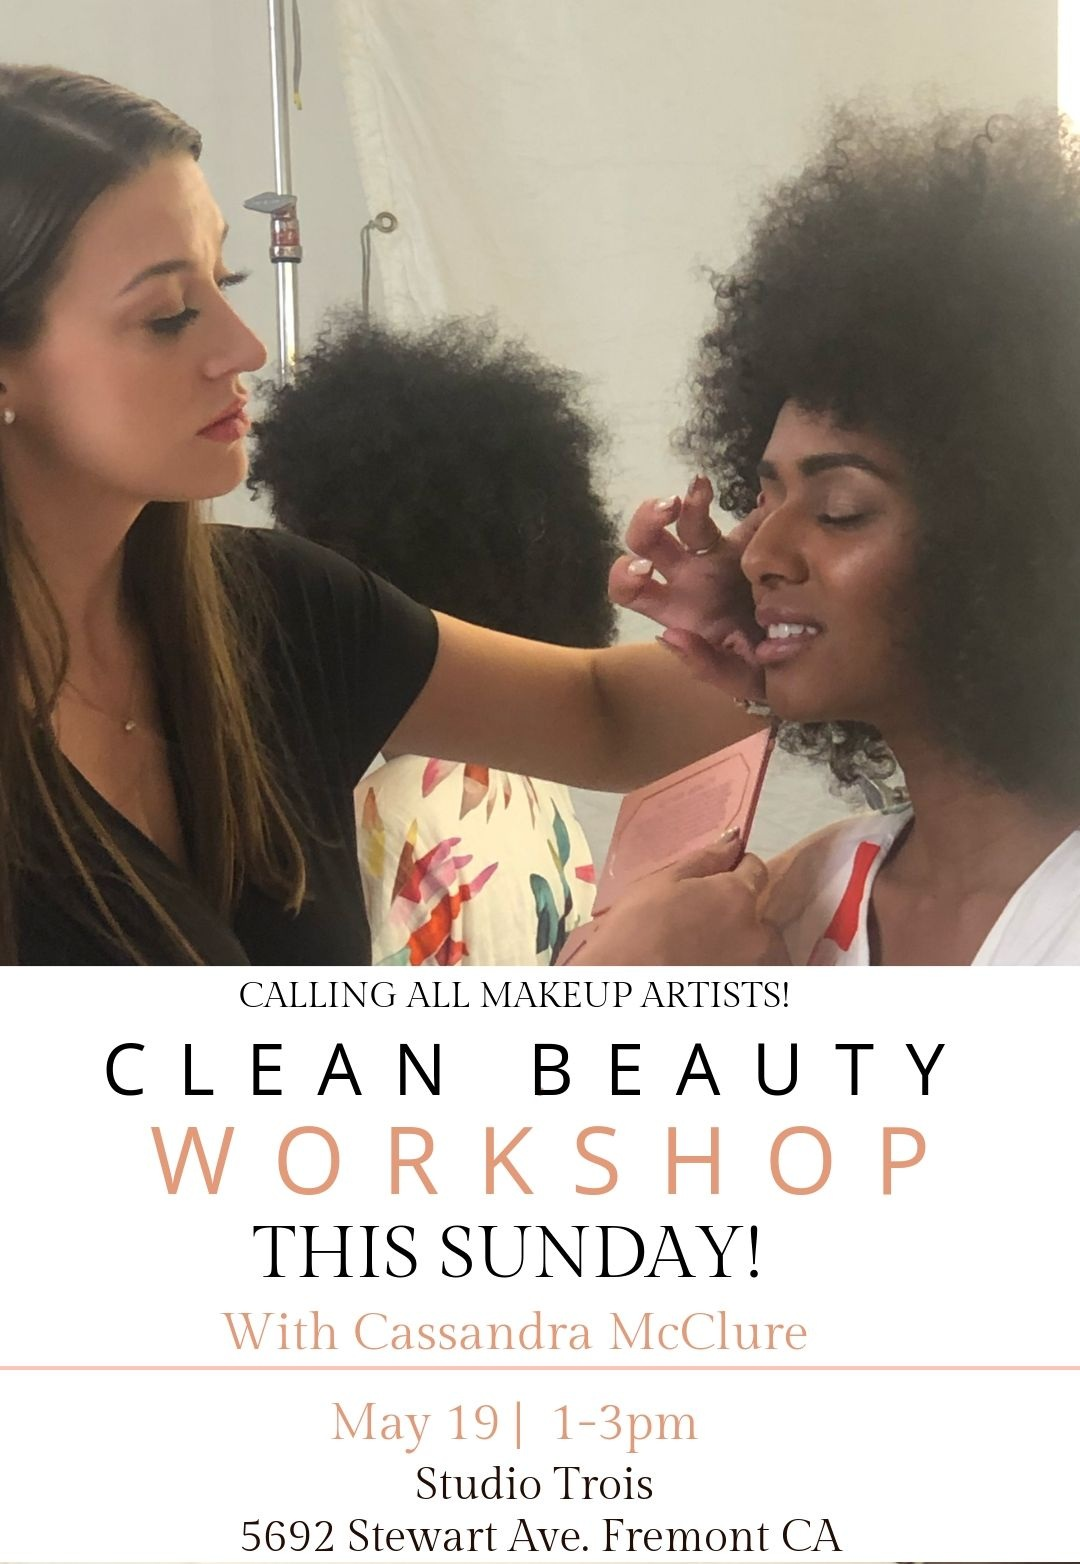 Clean Beauty Artistry Workshop for professional makeup artists - Presented by Cassandra McClure